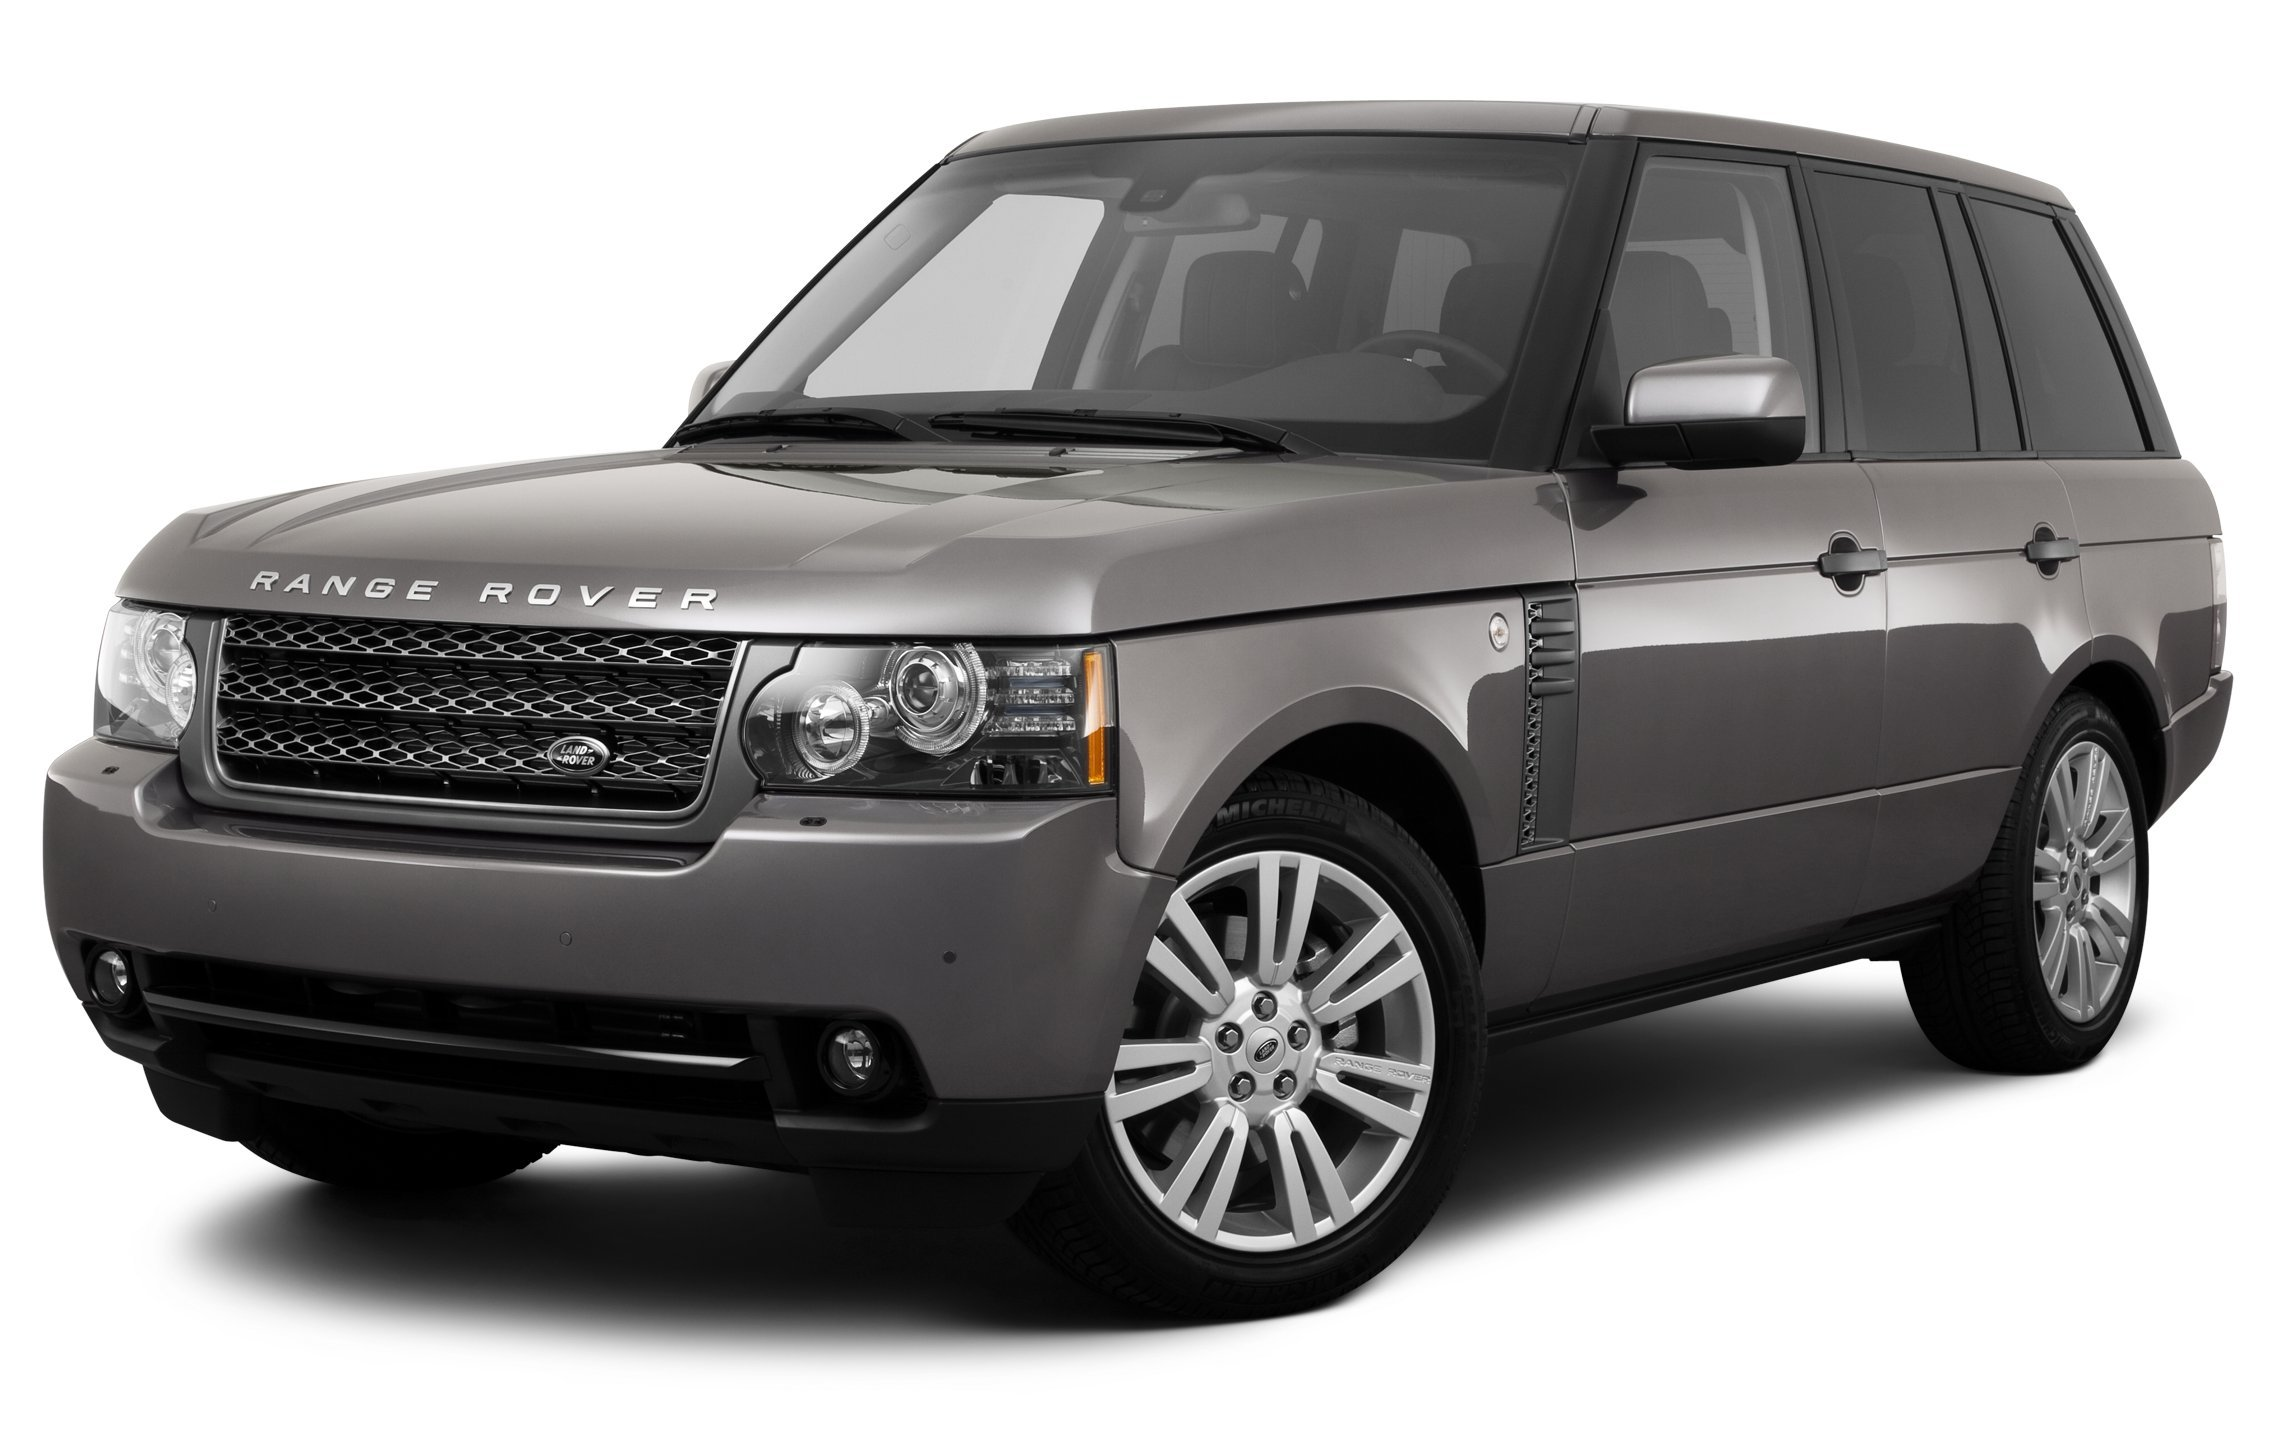 2011 Land Rover Range Rover HSE, 4-Wheel Drive 4-Door ...